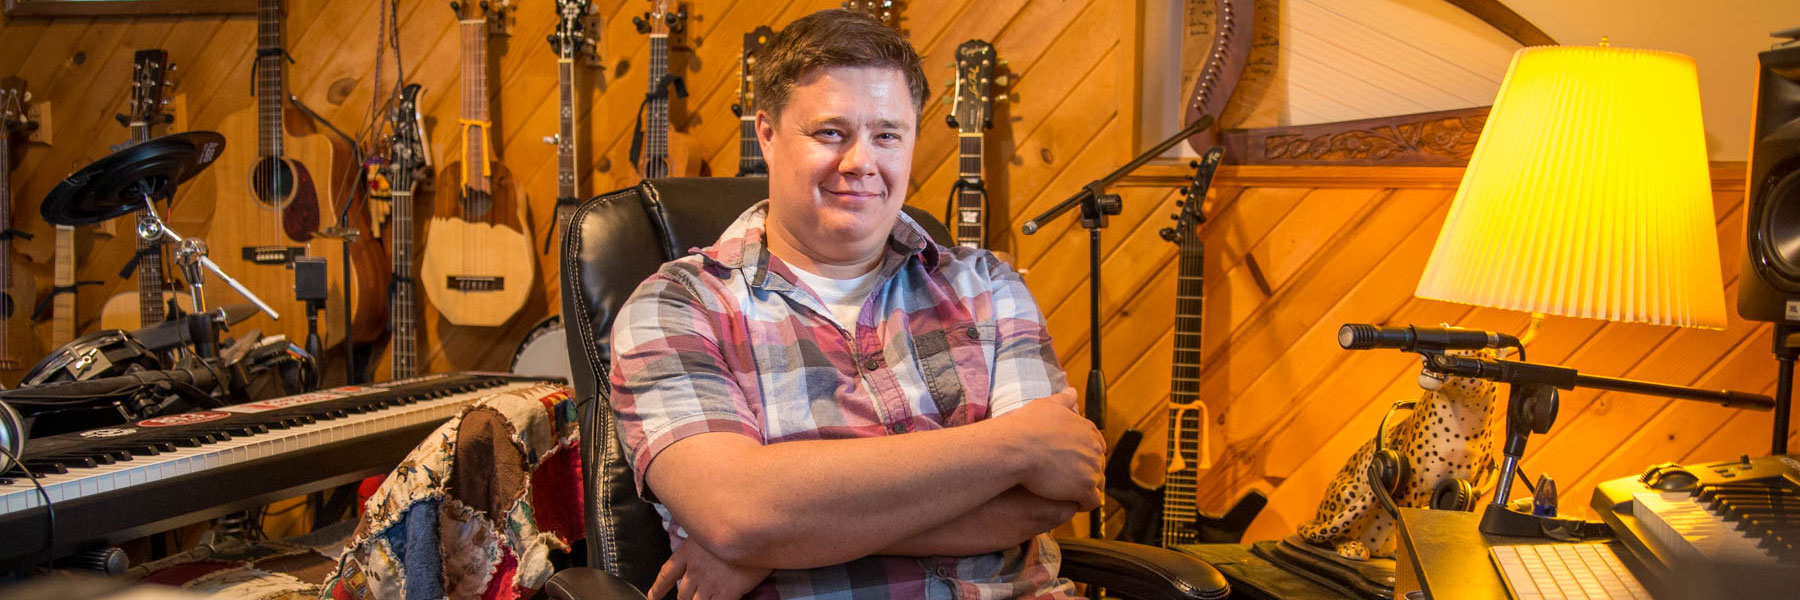 Professor Benji Inniger of the BLC Theater Department sits in his recording studio surrounded by musical instruments.